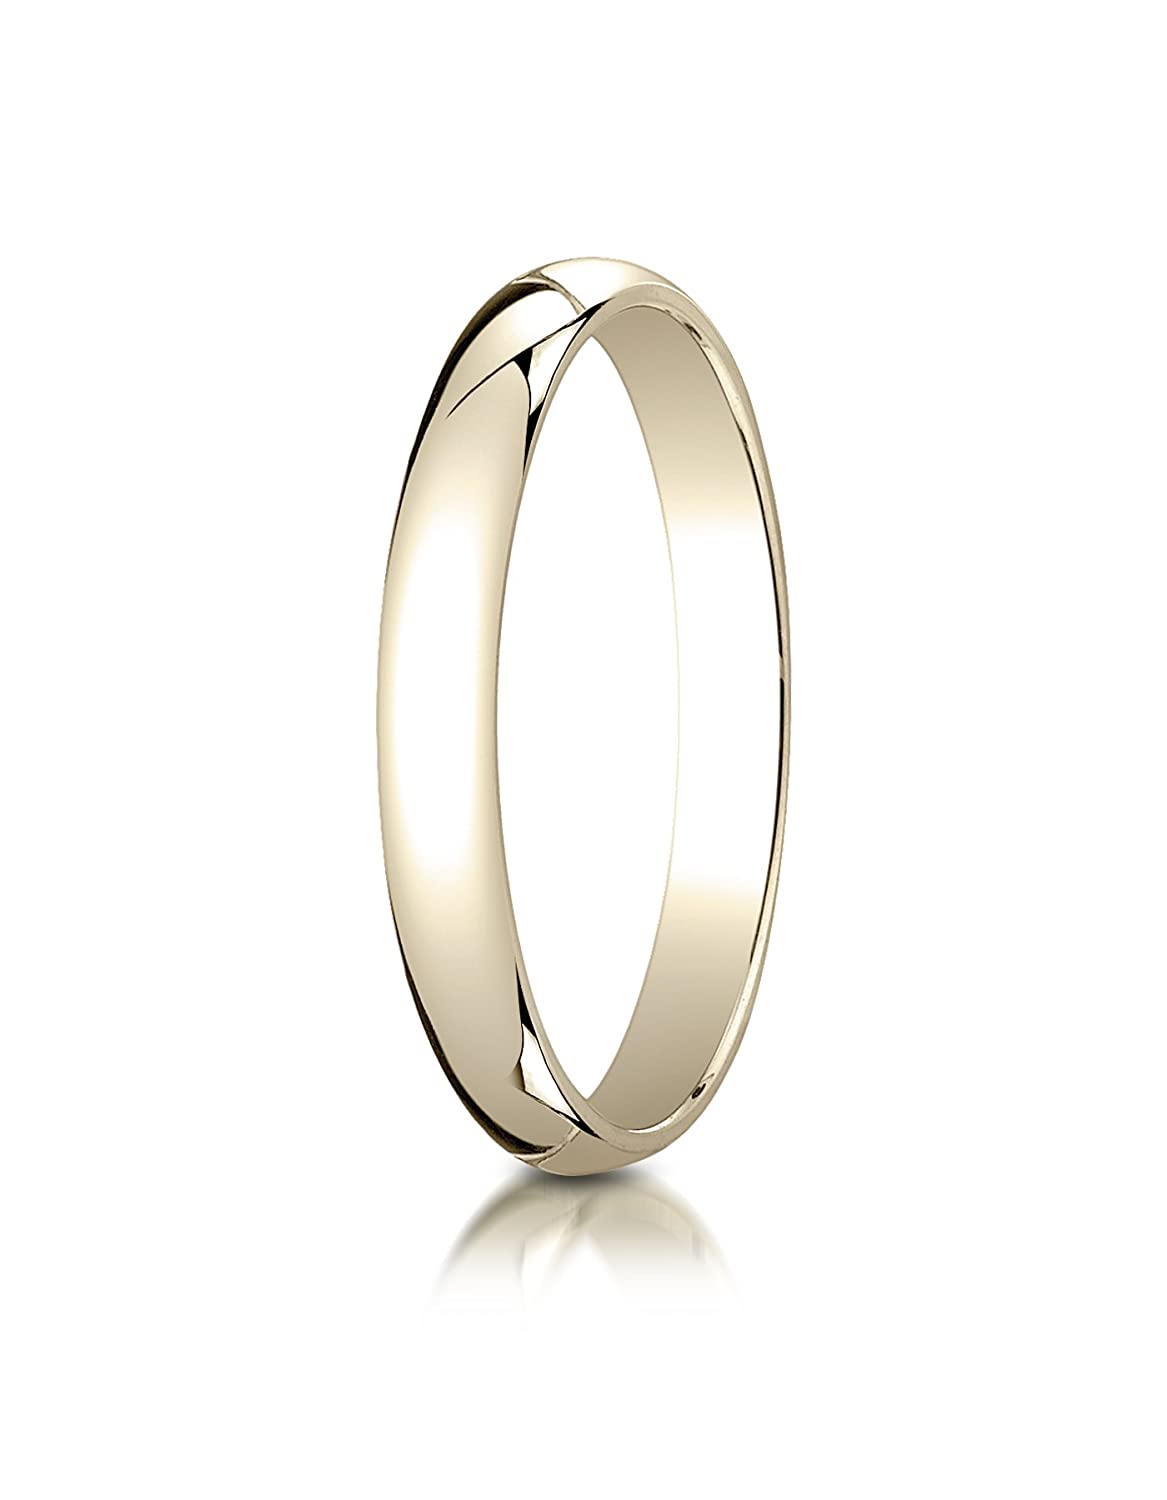 PriceRock 14K Yellow Gold 3mm Slightly Domed Traditional Oval Wedding Band Ring for Men /& Women Size 4 to 15